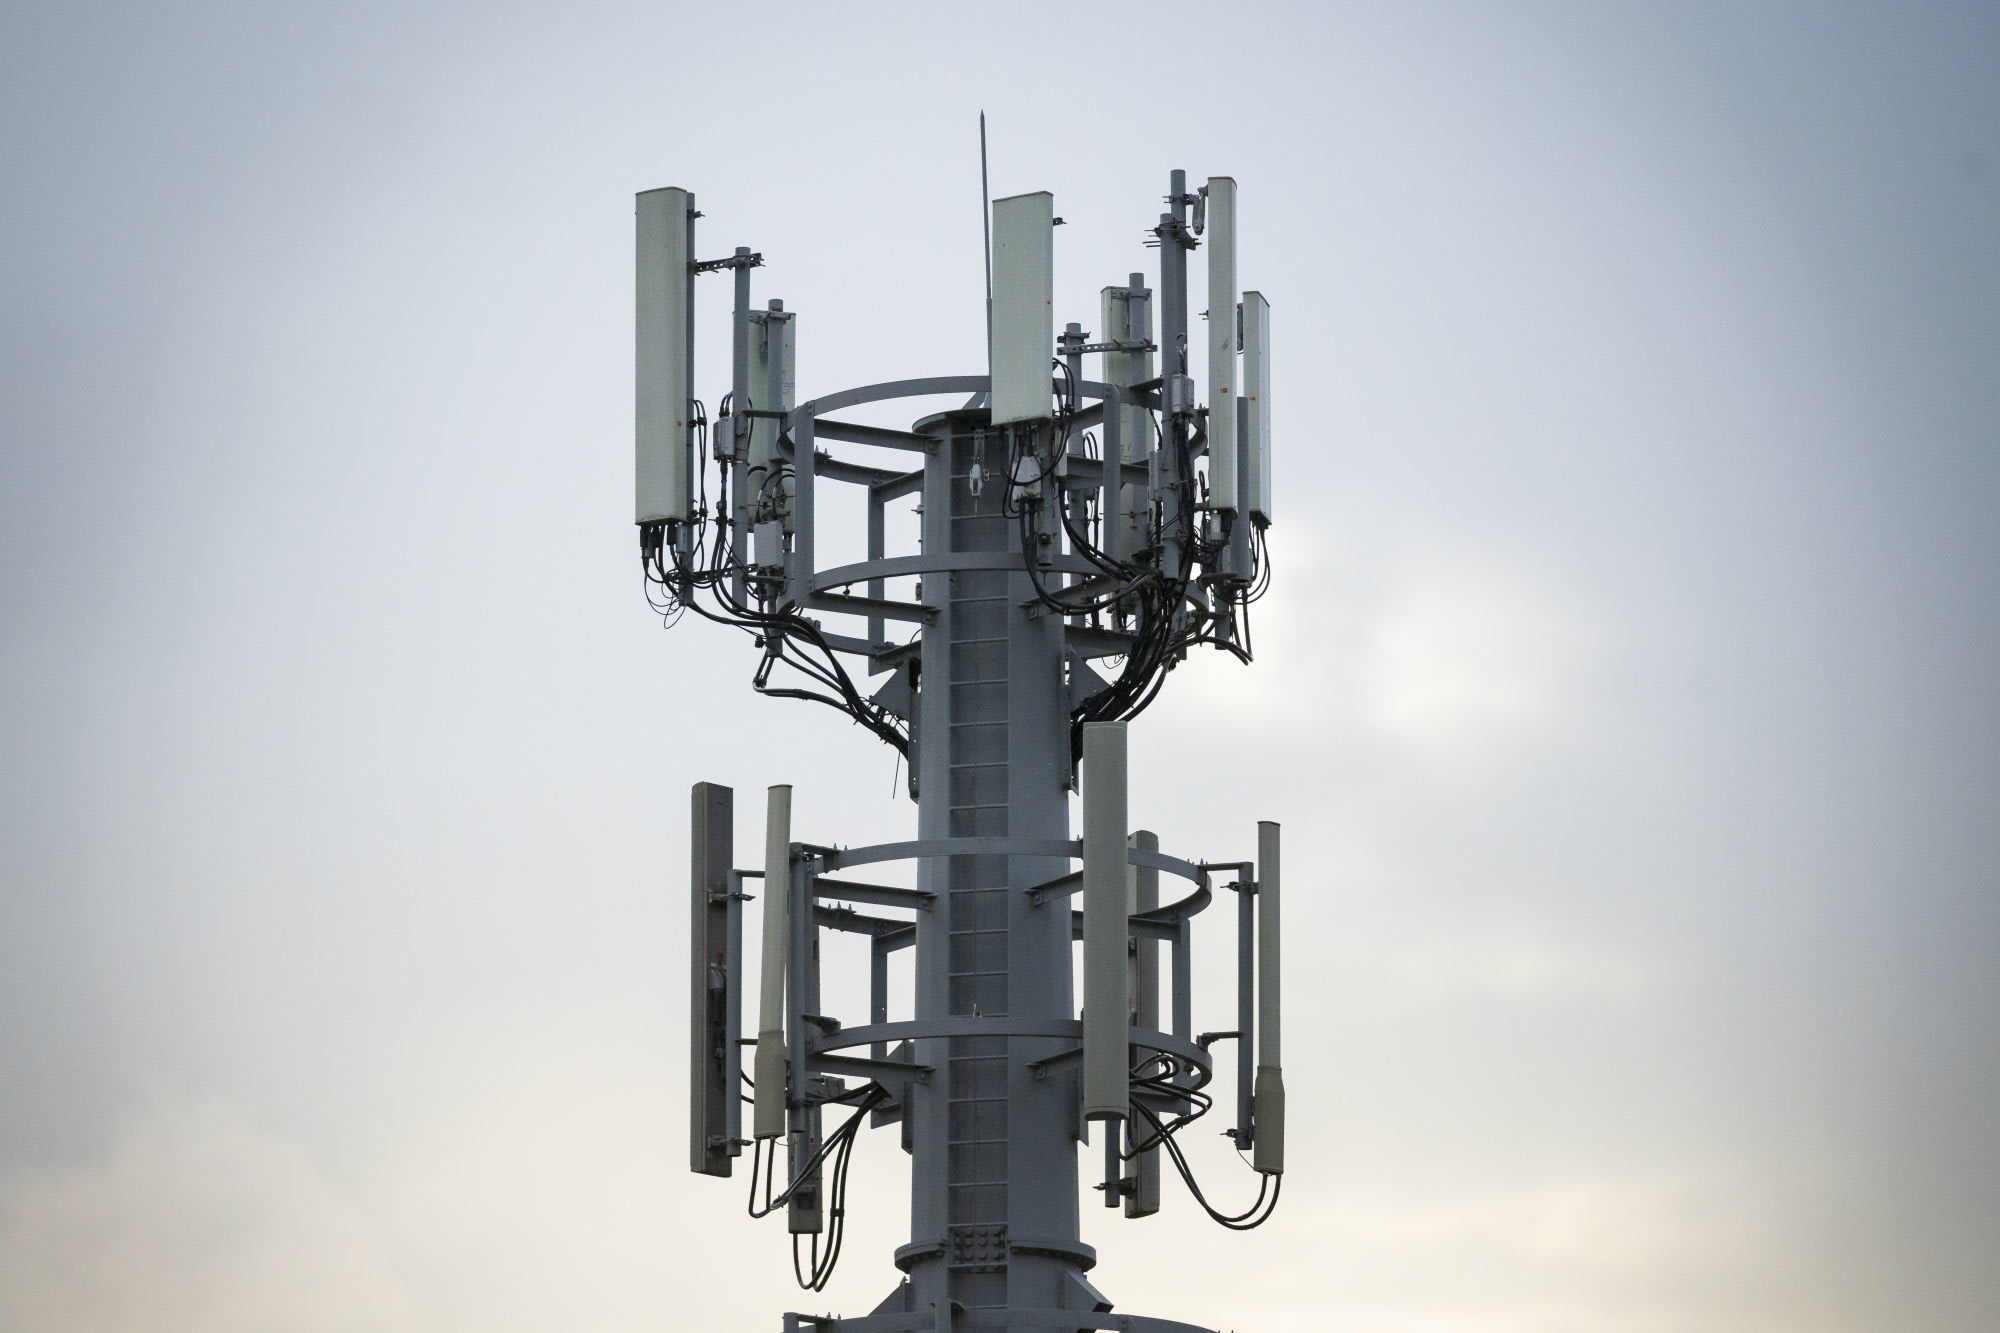 Cell tower. Matthew Horwood via Getty Images